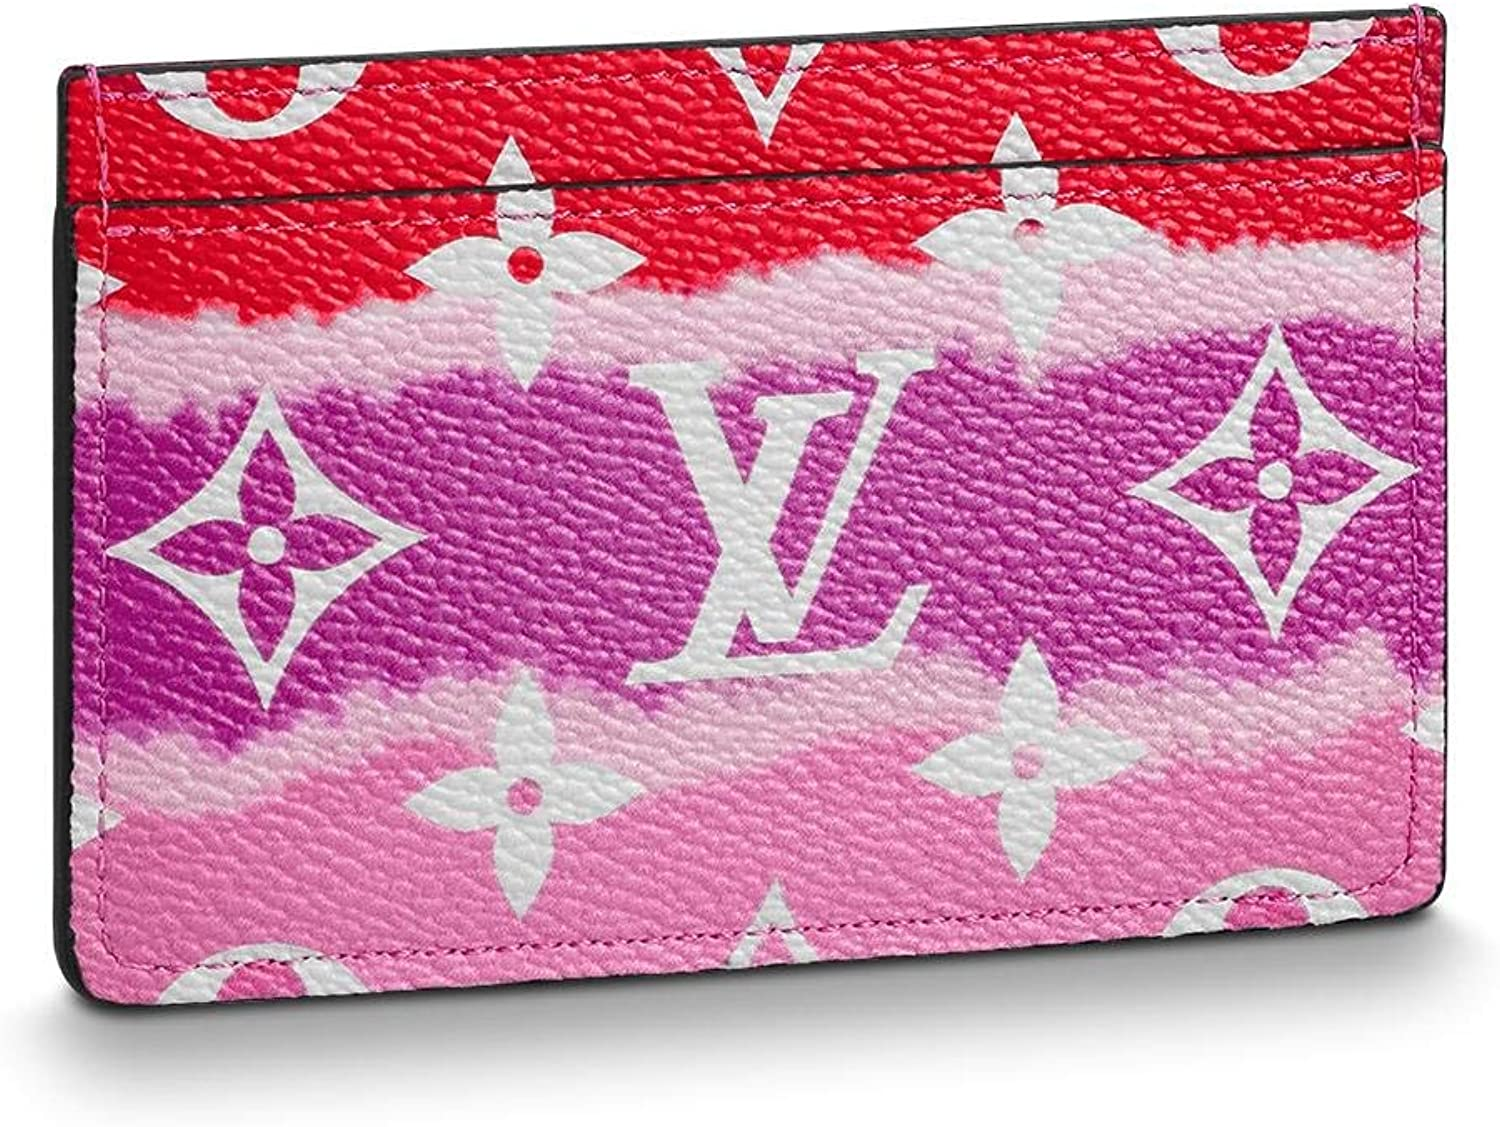 Louis Vuitton Lv Escale Card Holder Red Limited Edition At Amazon Women S Clothing Store